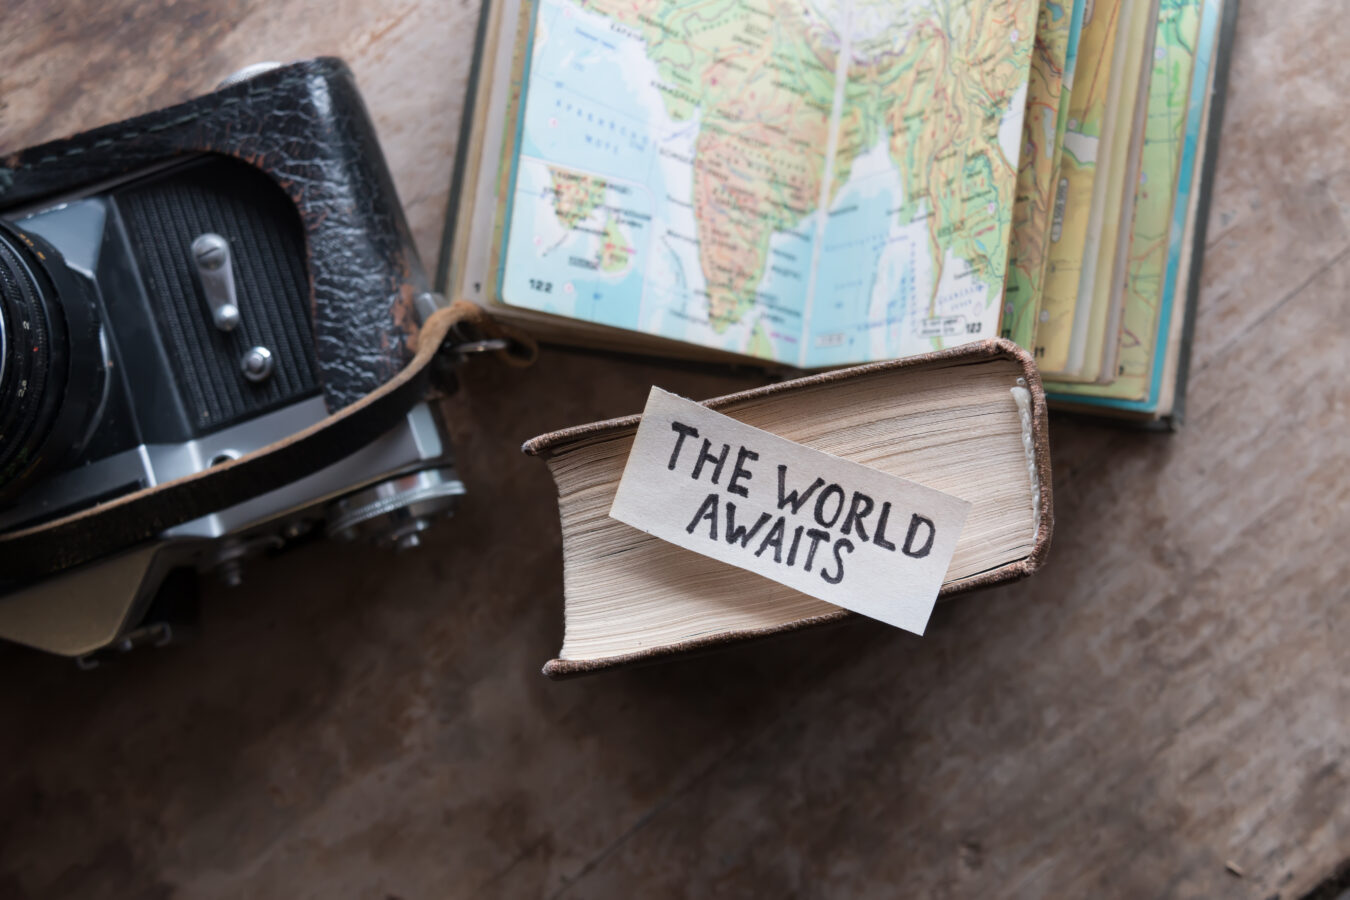 A paper on a world map says the world awaits the travel industry recovery.